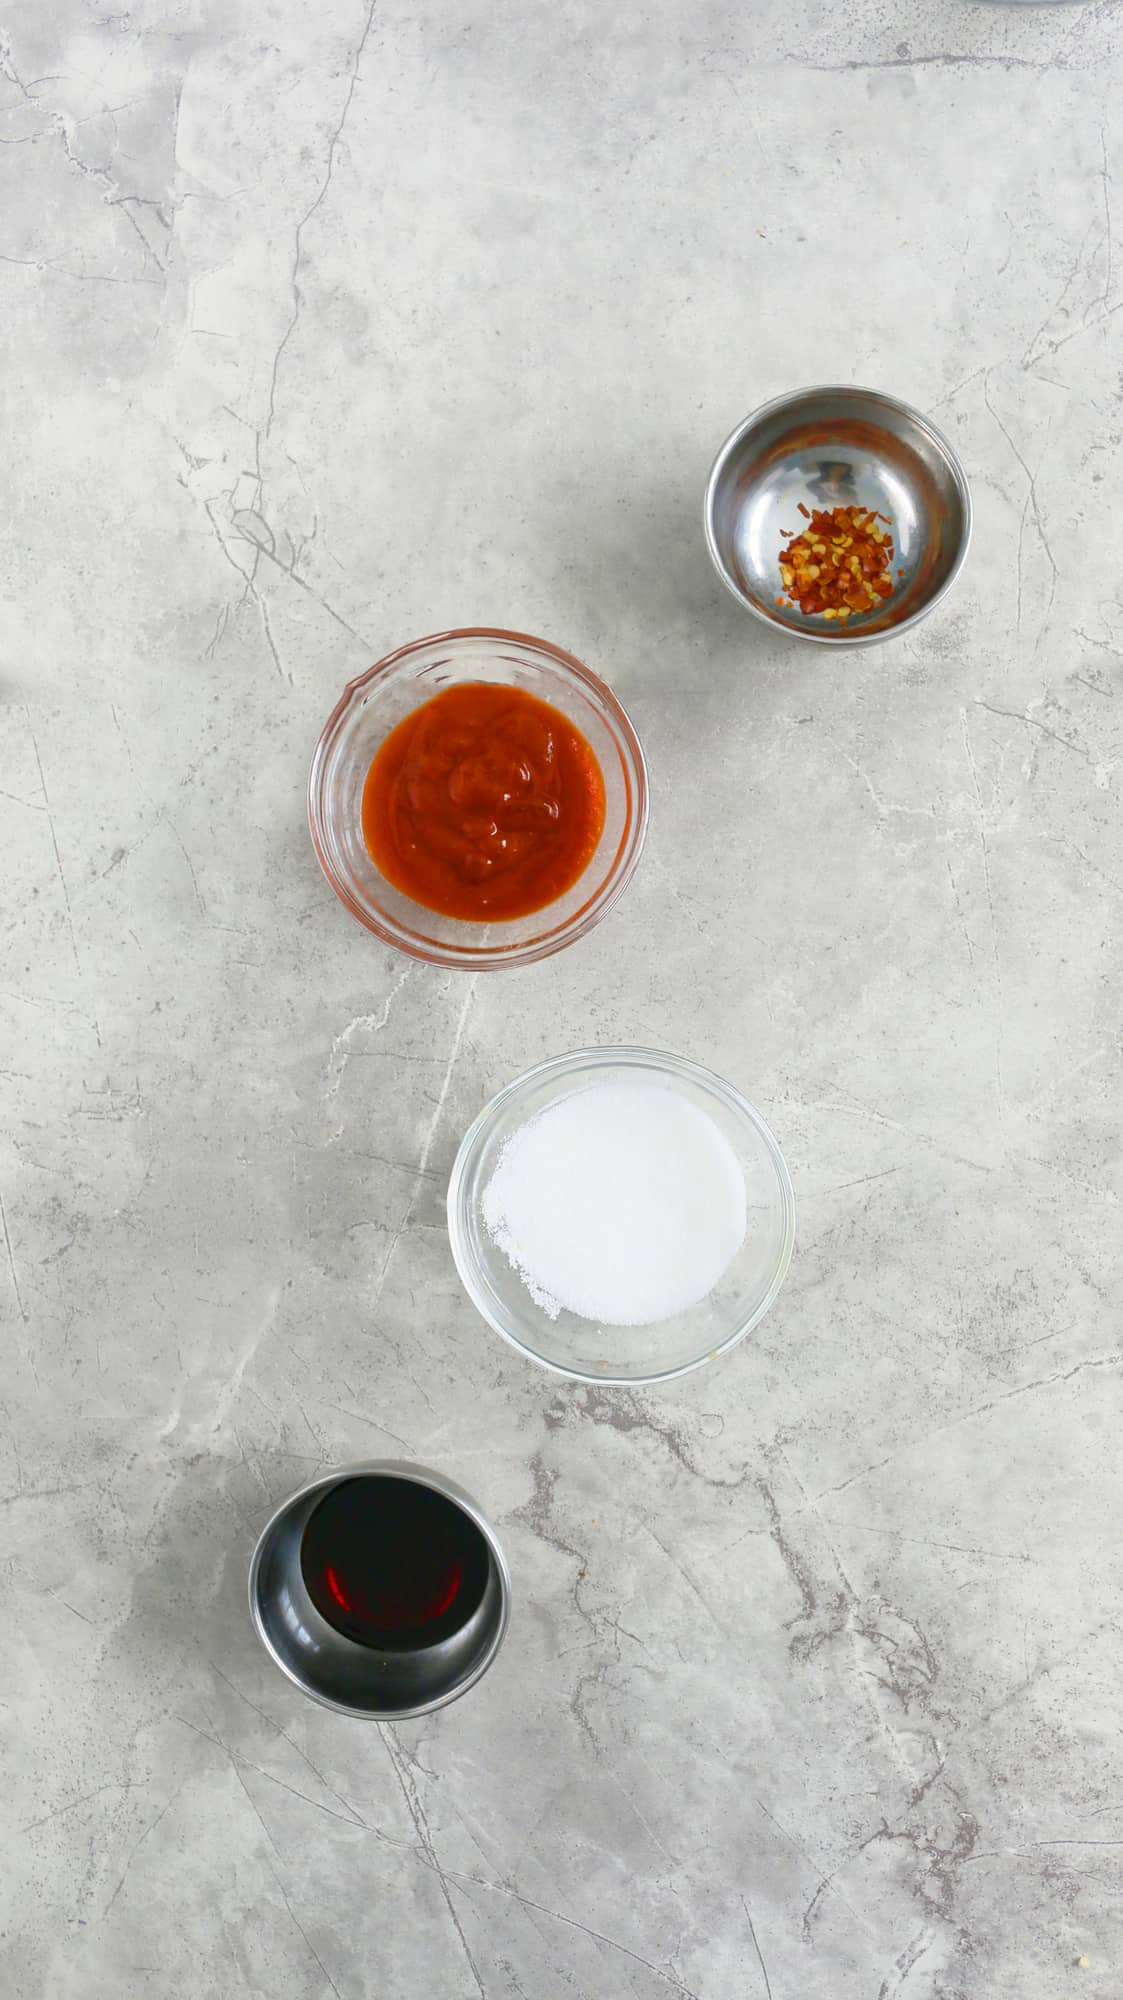 INGREDIENTS FOR SRIRACHA SOY SAUCE